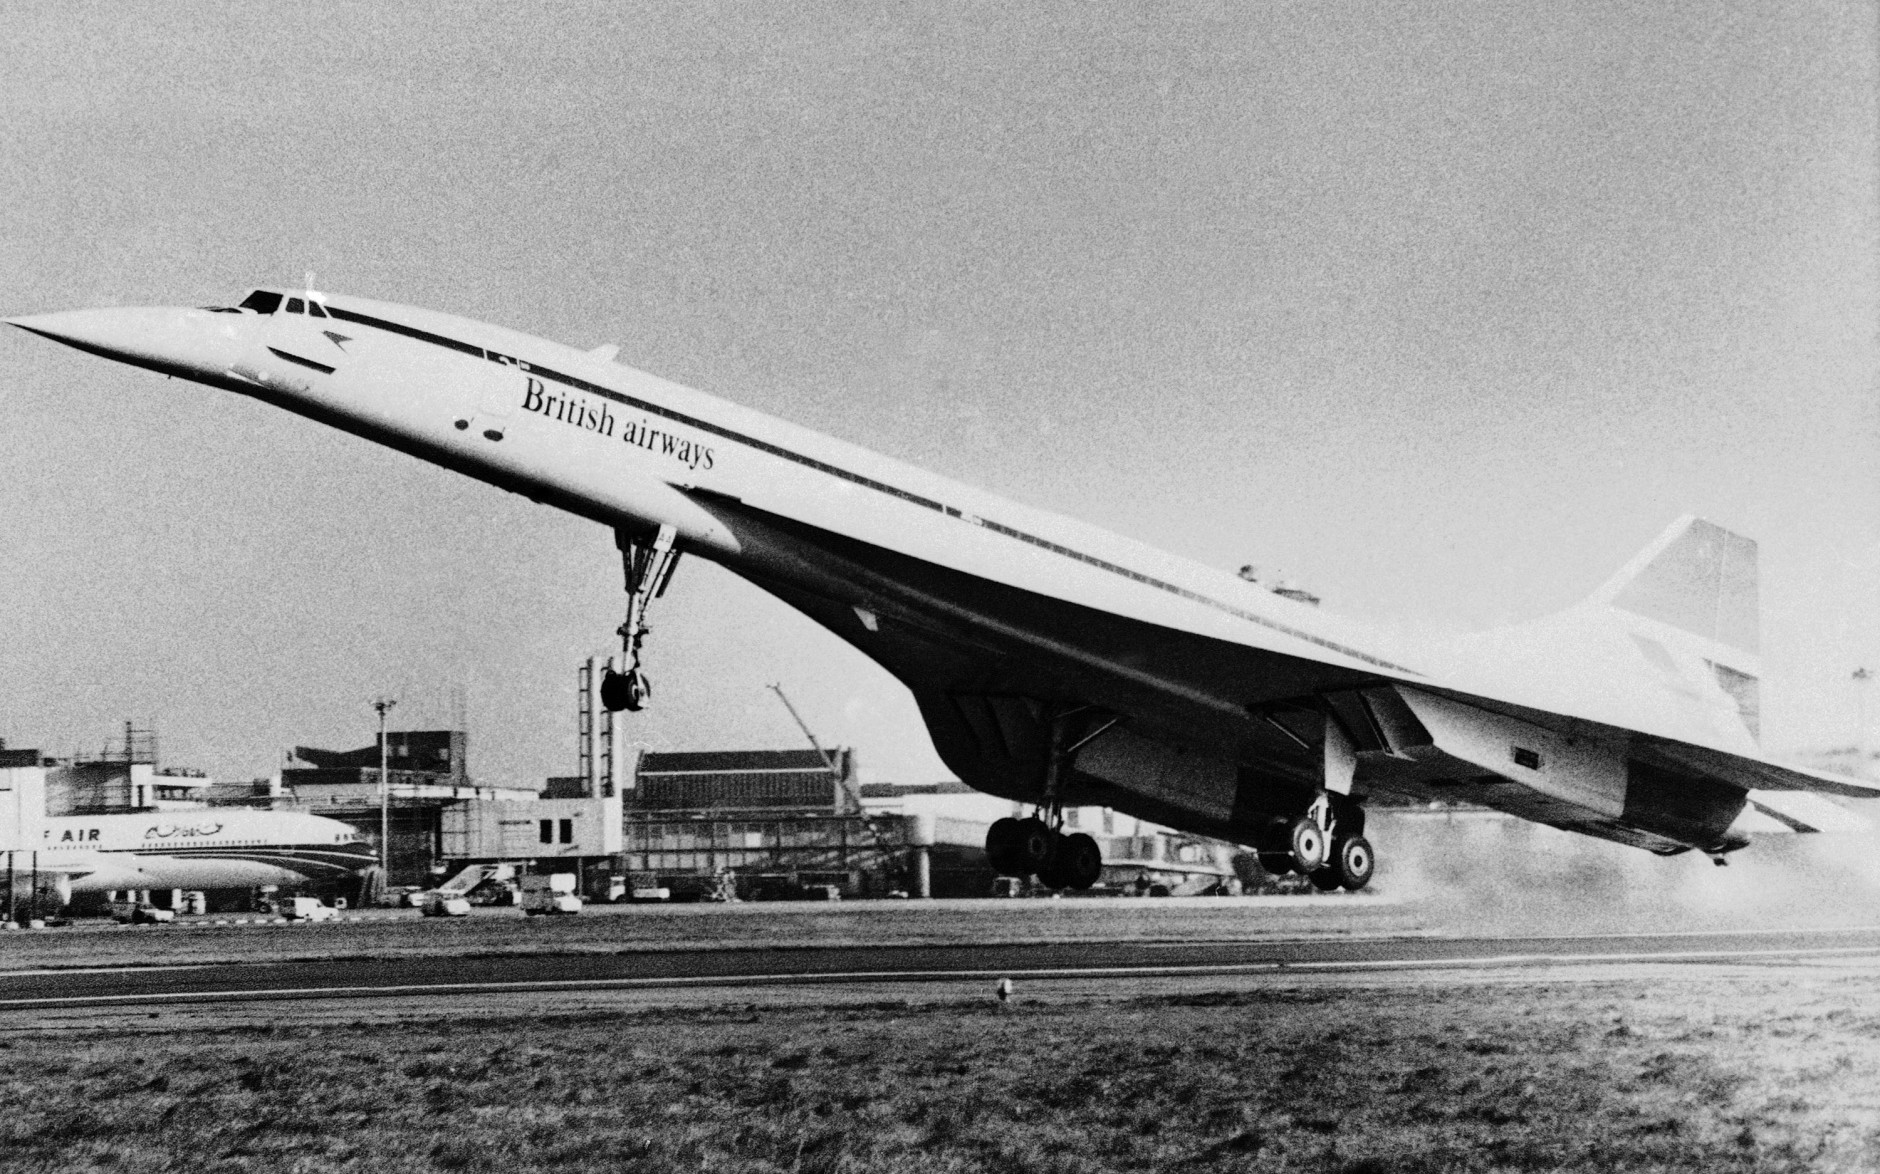 A British Airways supersonic Concorde airliner takes off from London's Heathrow Airport at 10:29 gmt, Tuesday, Nov. 22, 1977 on its inaugural scheduled passenger flight to New York's John F. Kennedy Airport. The aircraft filled with 100 passengers, set a record crossing of 3 hours 23 minutes. (AP Photo)